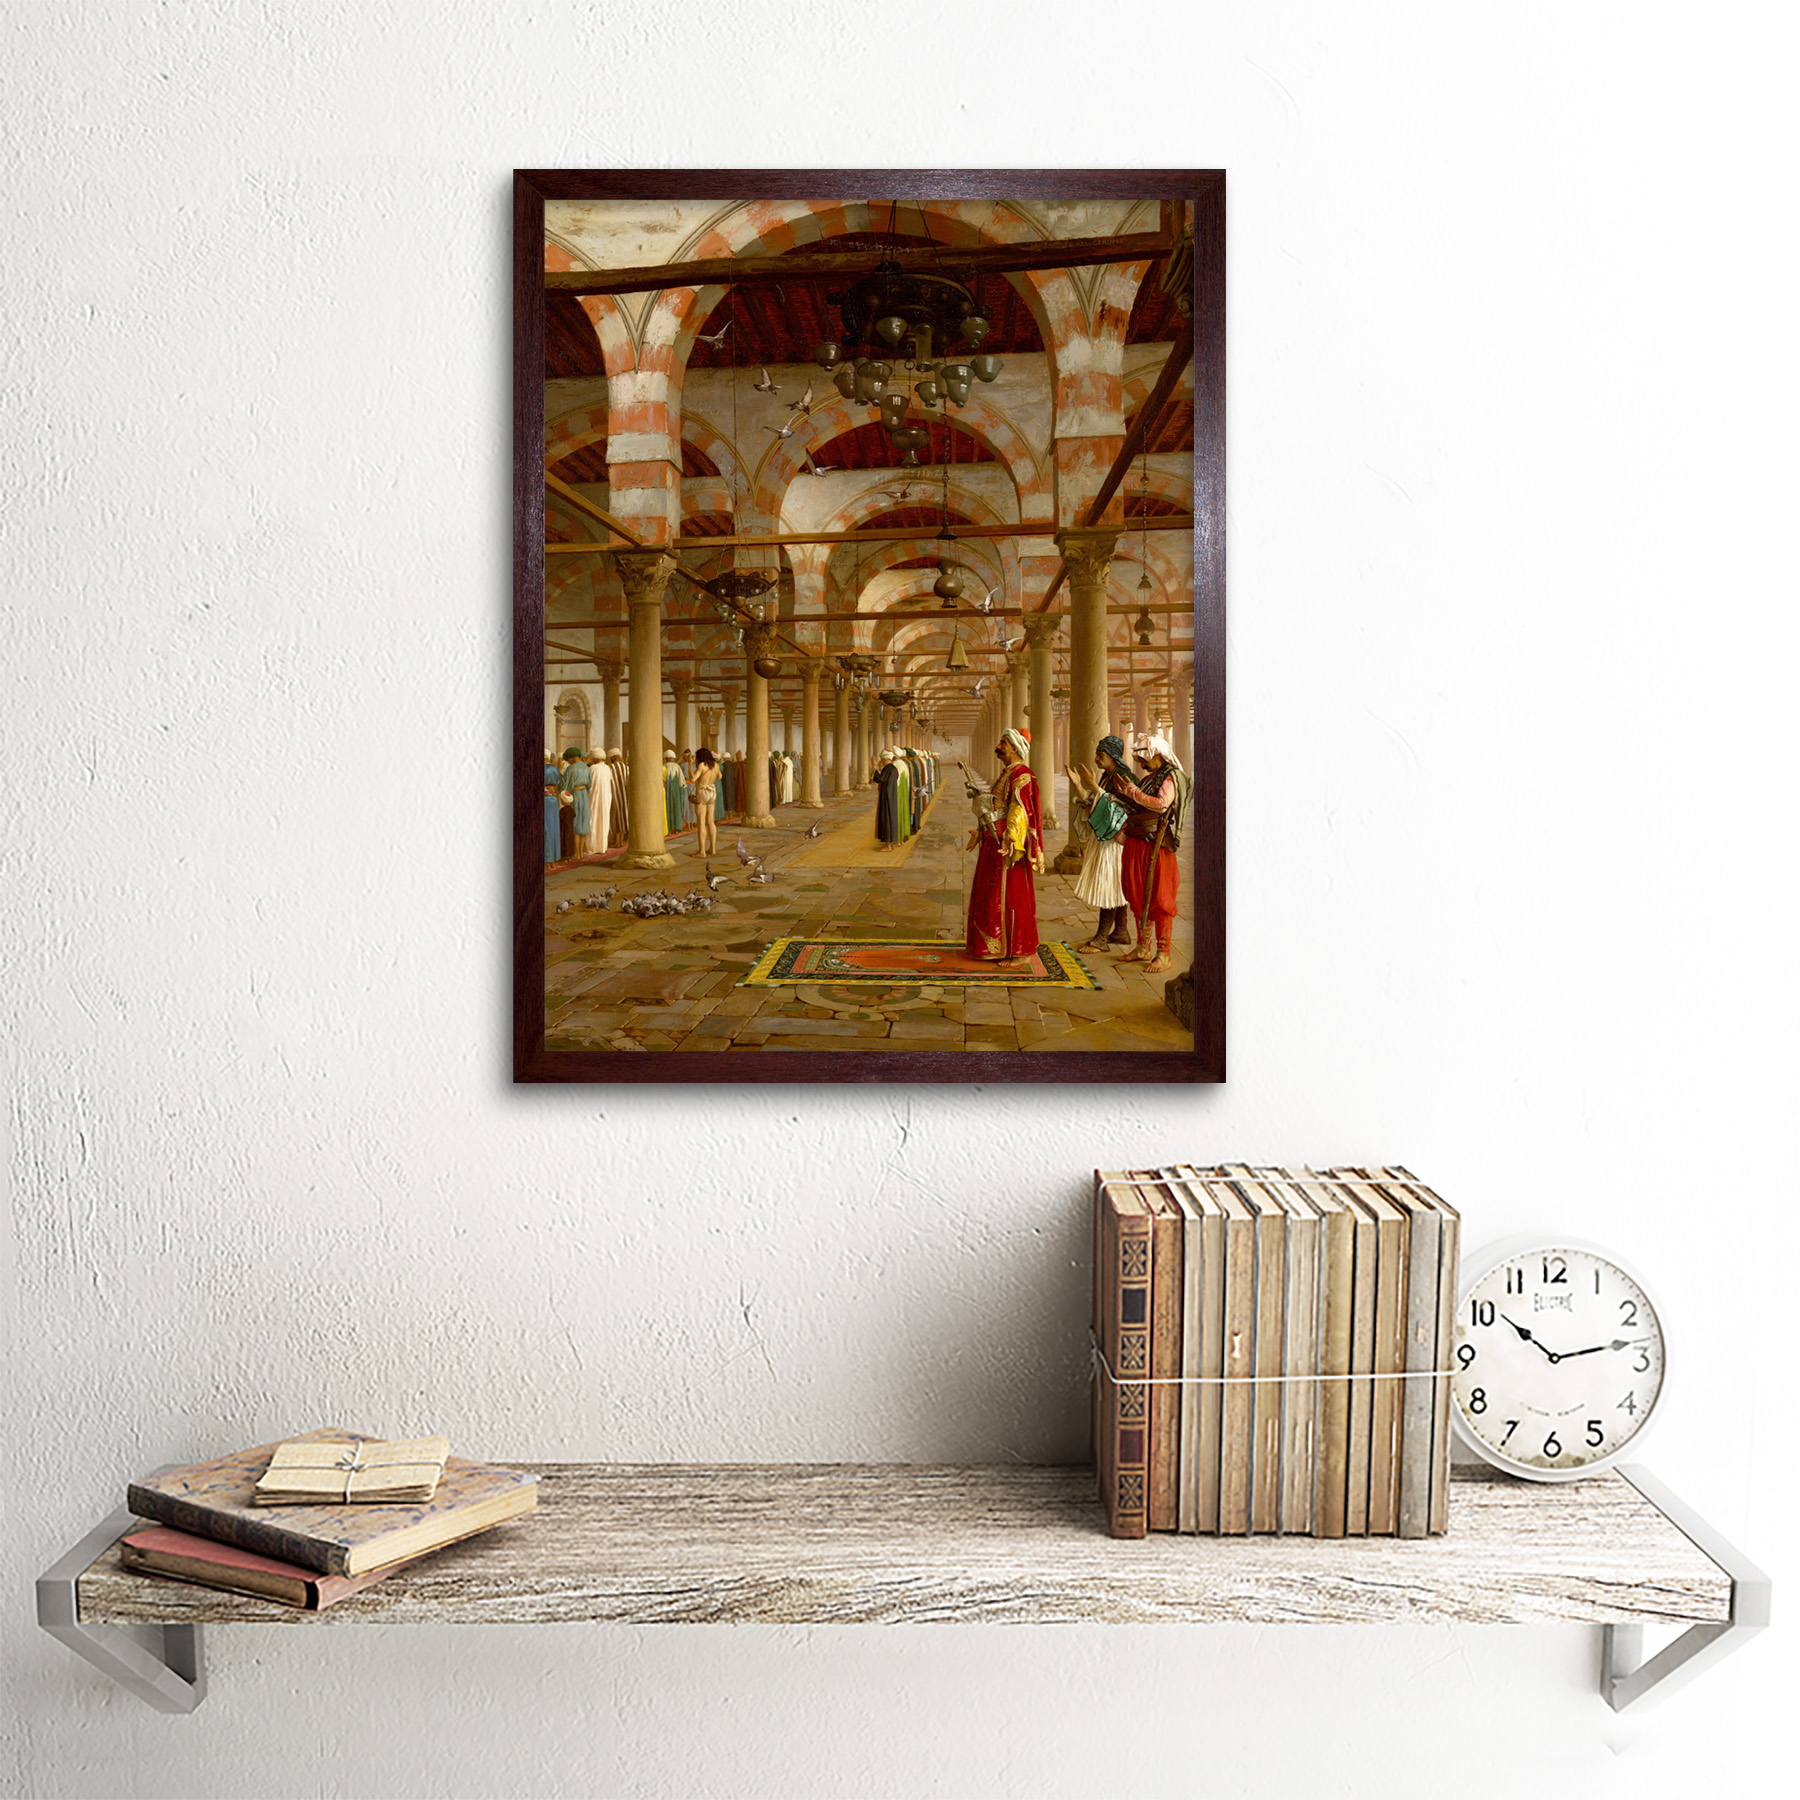 Gerome-Prayer-Mosque-Islamic-Painting-Framed-Wall-Art-Poster thumbnail 8